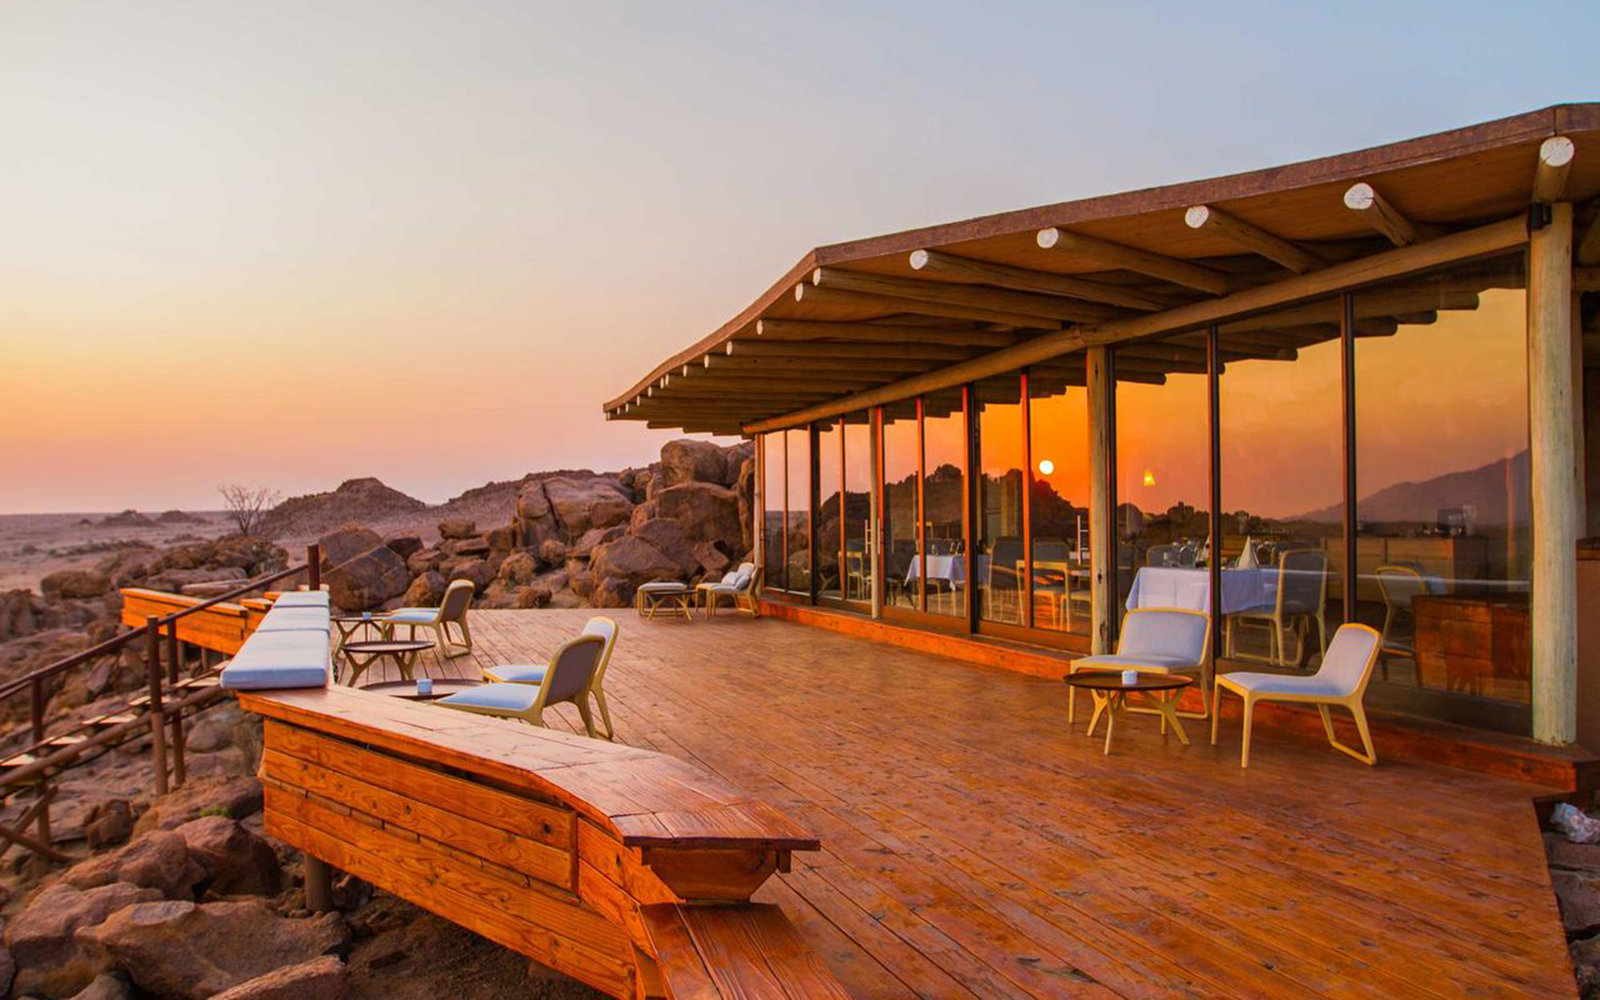 Namibia Exclusive Sorris Sorris Camp